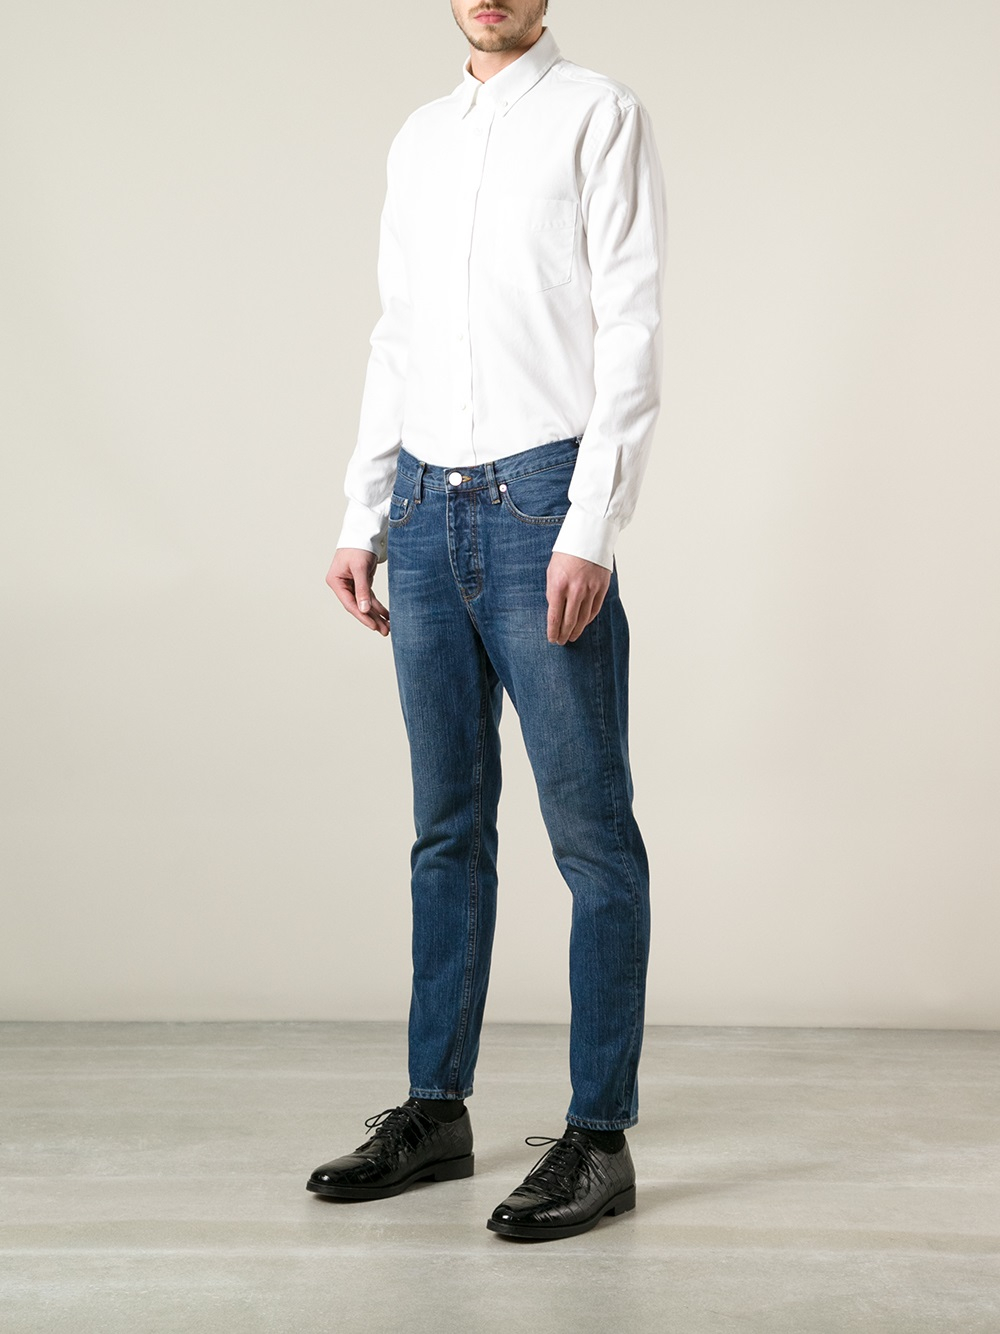 acne town jeans